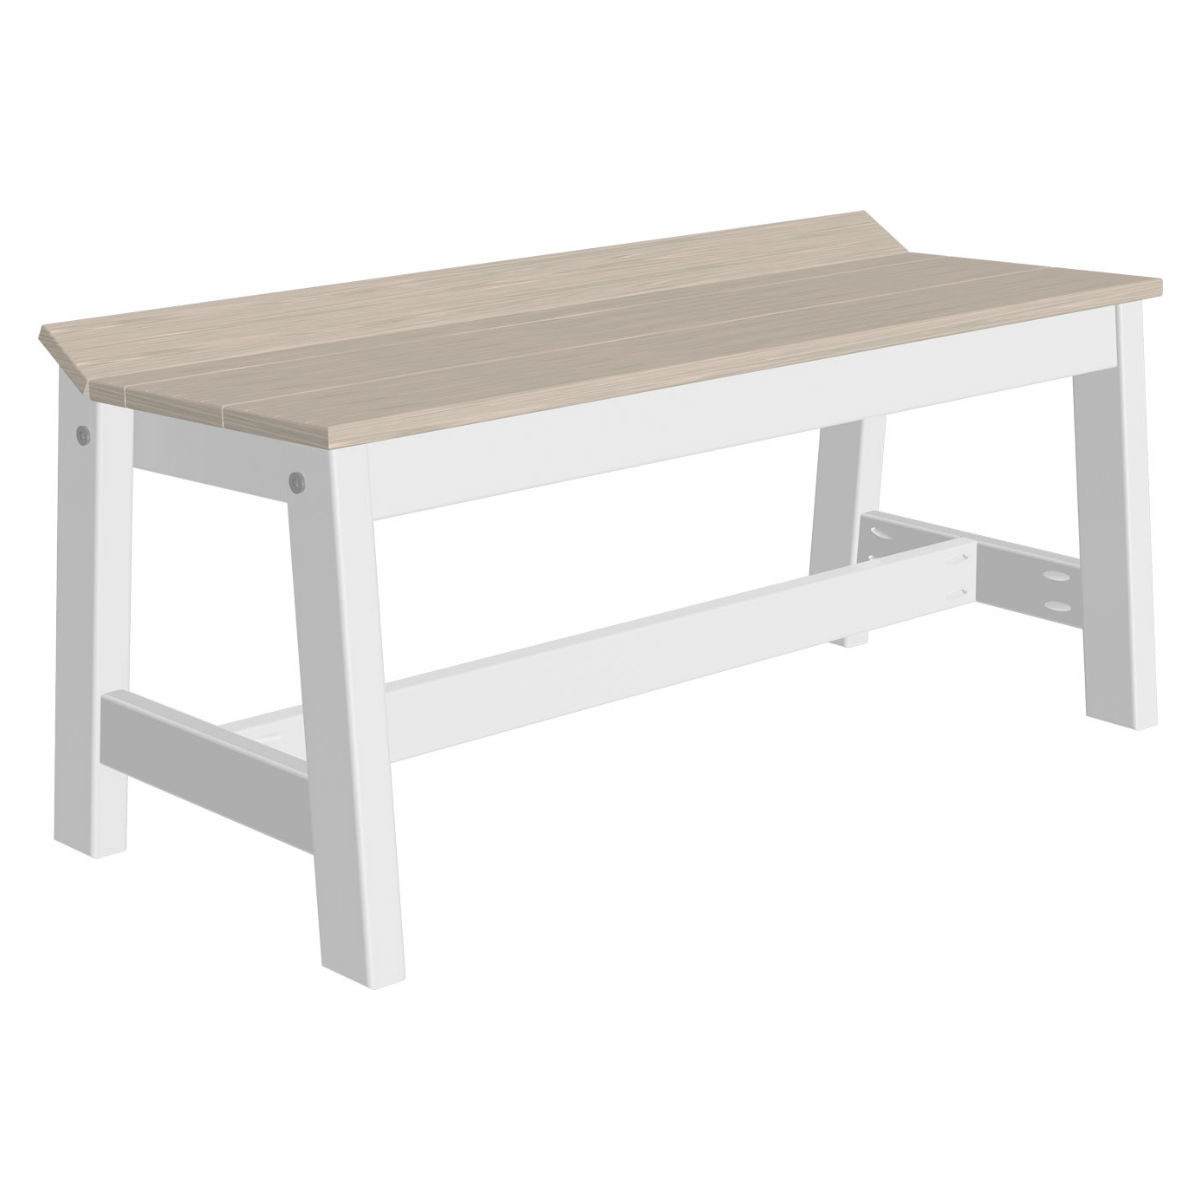 Small Cafe Bench - Birch & White